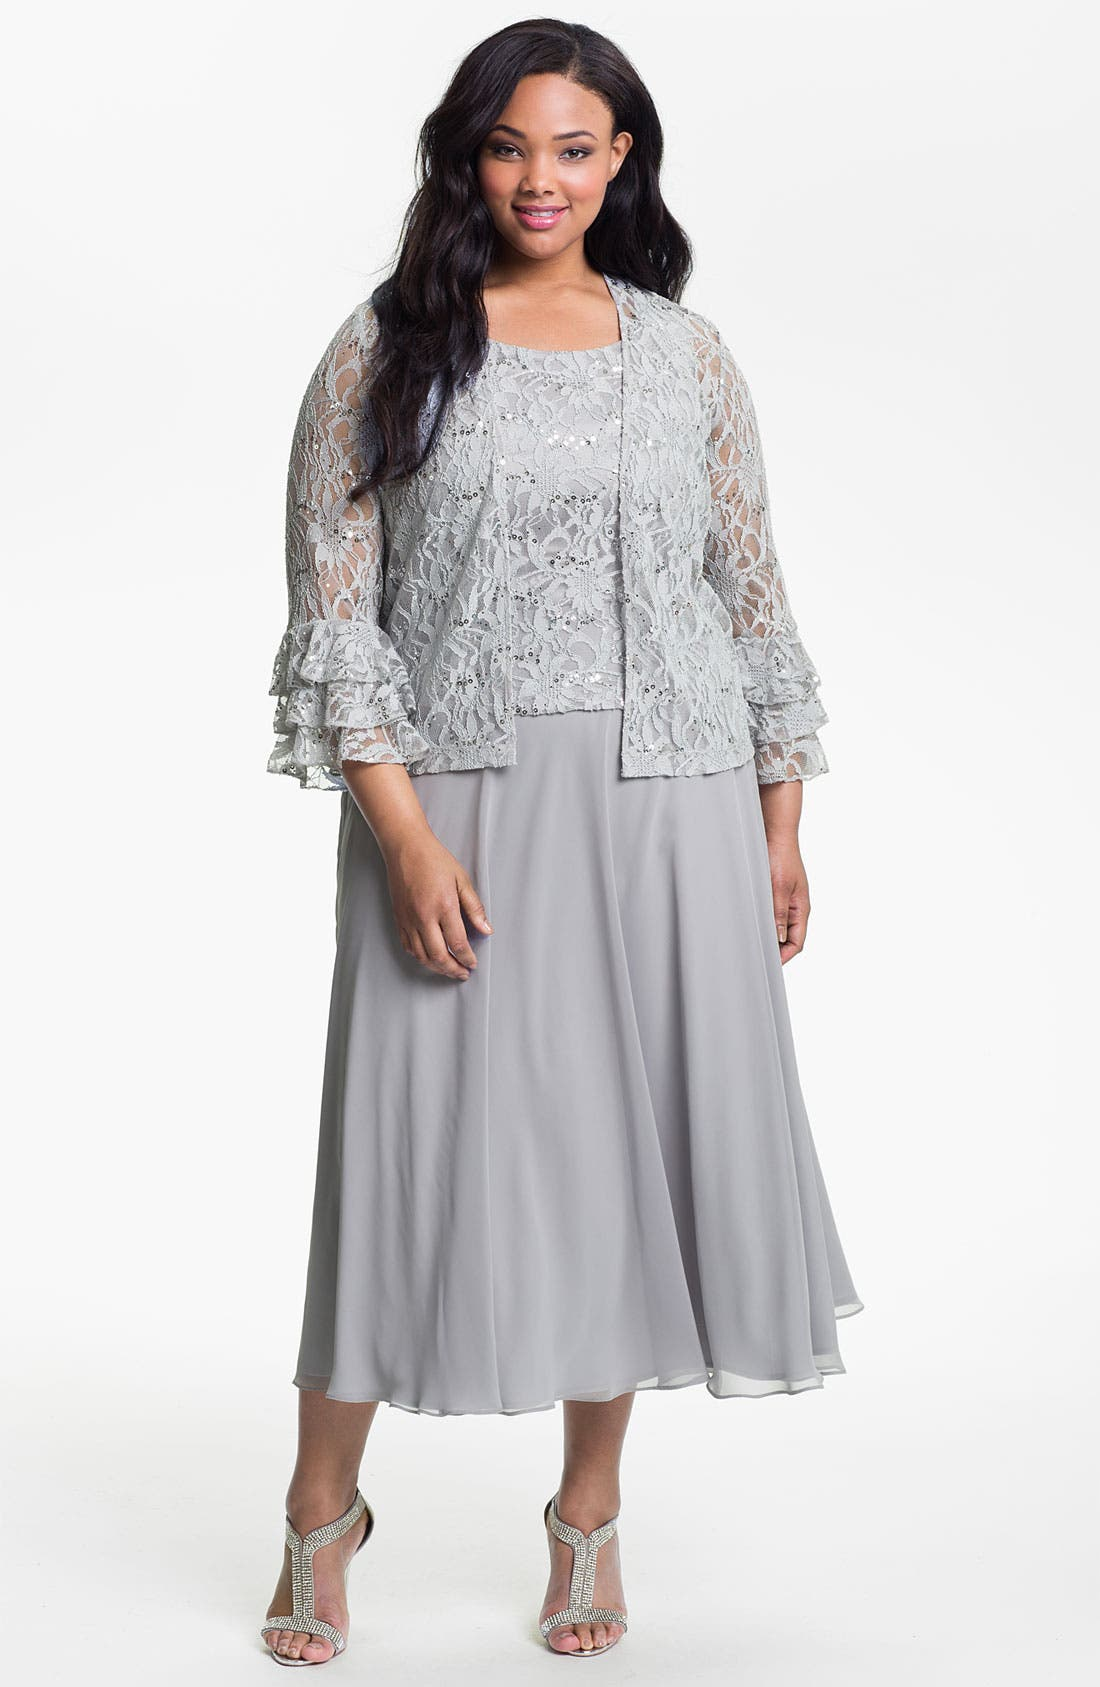 Main Image - Eliza J Lace & Chiffon Mock Two Piece Dress & Jacket (Plus)